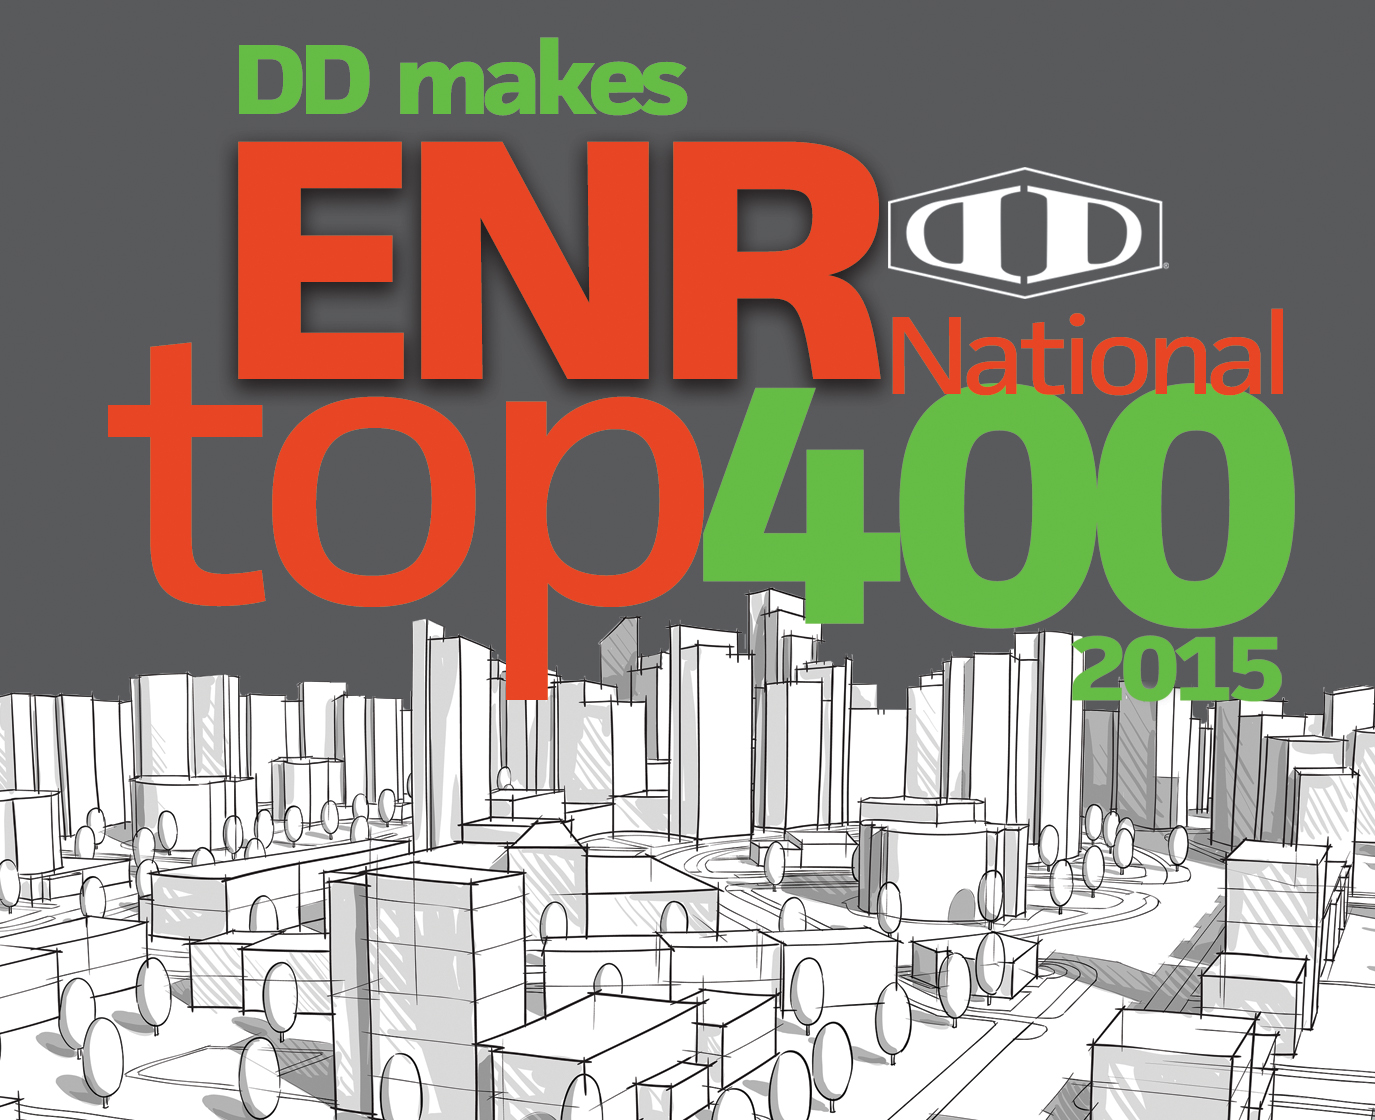 DD Makes ENR National Top 400 in 2015